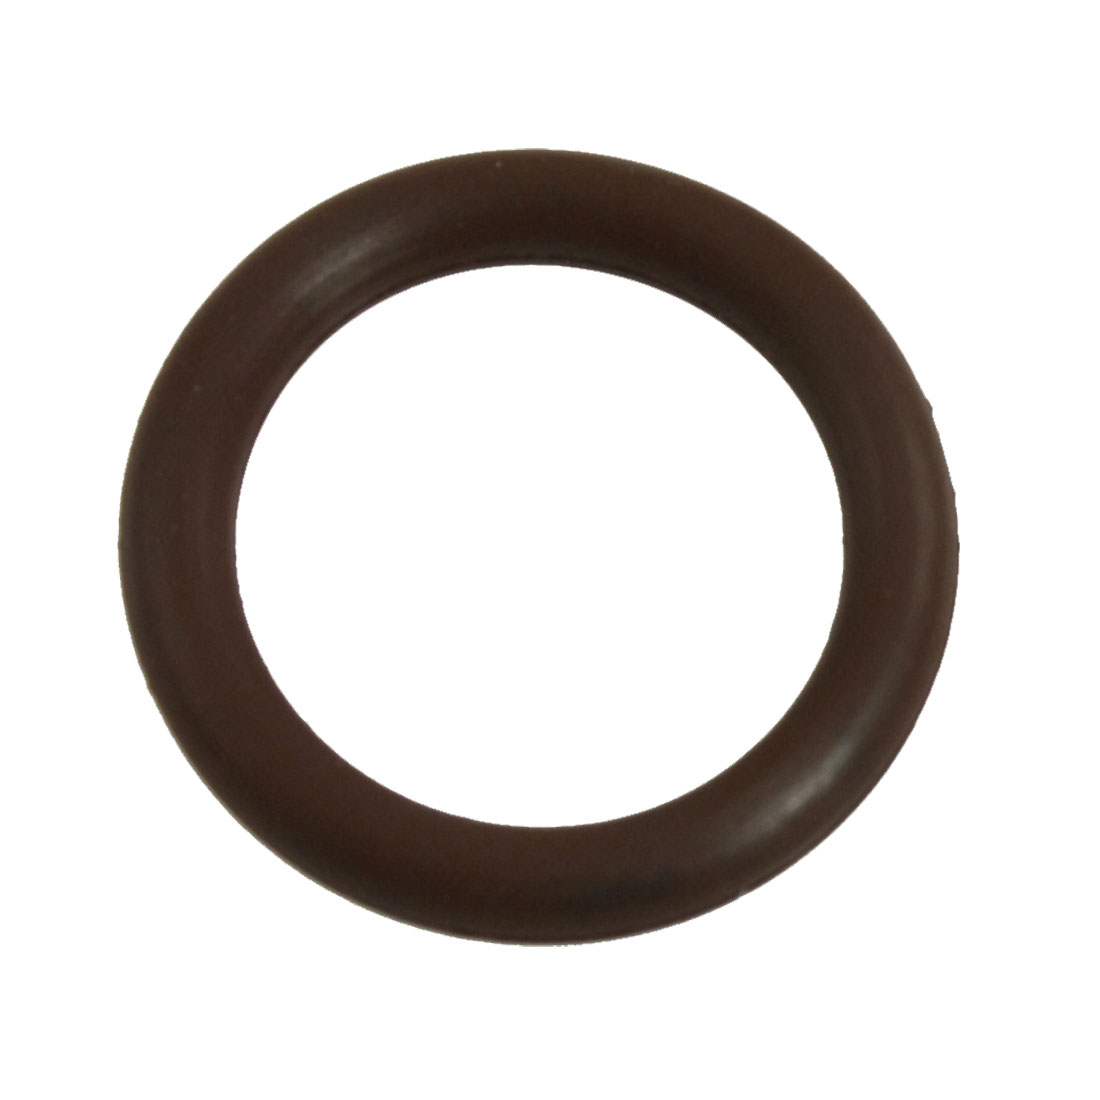 25mm-x-3-5mm-Fluorine-Oil-Sealing-Gaskets-Rubber-O-Ring